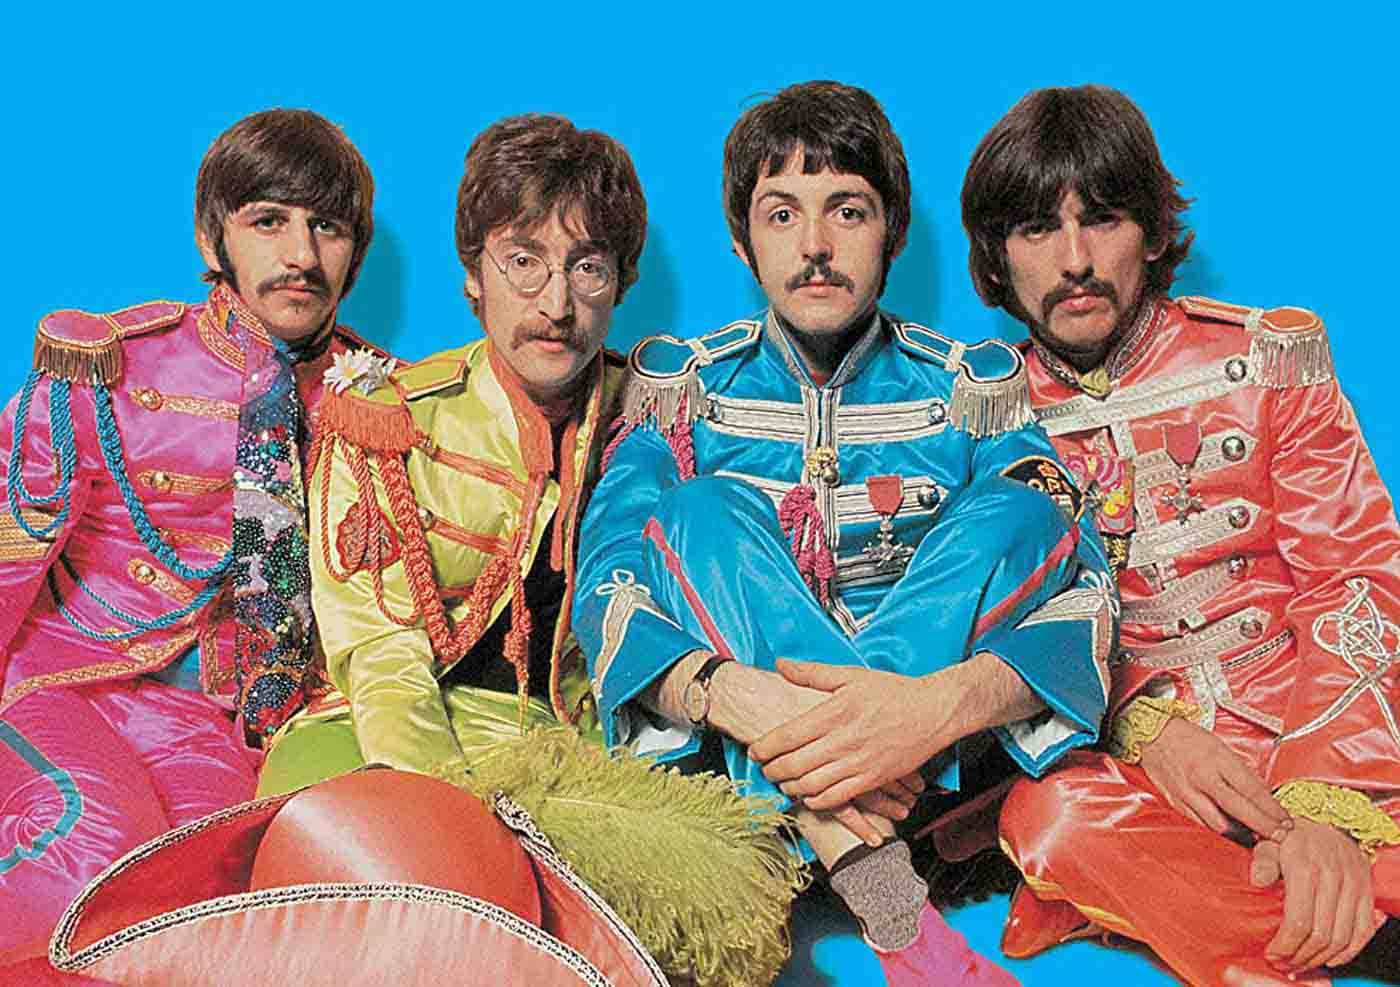 15 interesting facts about The Beatles